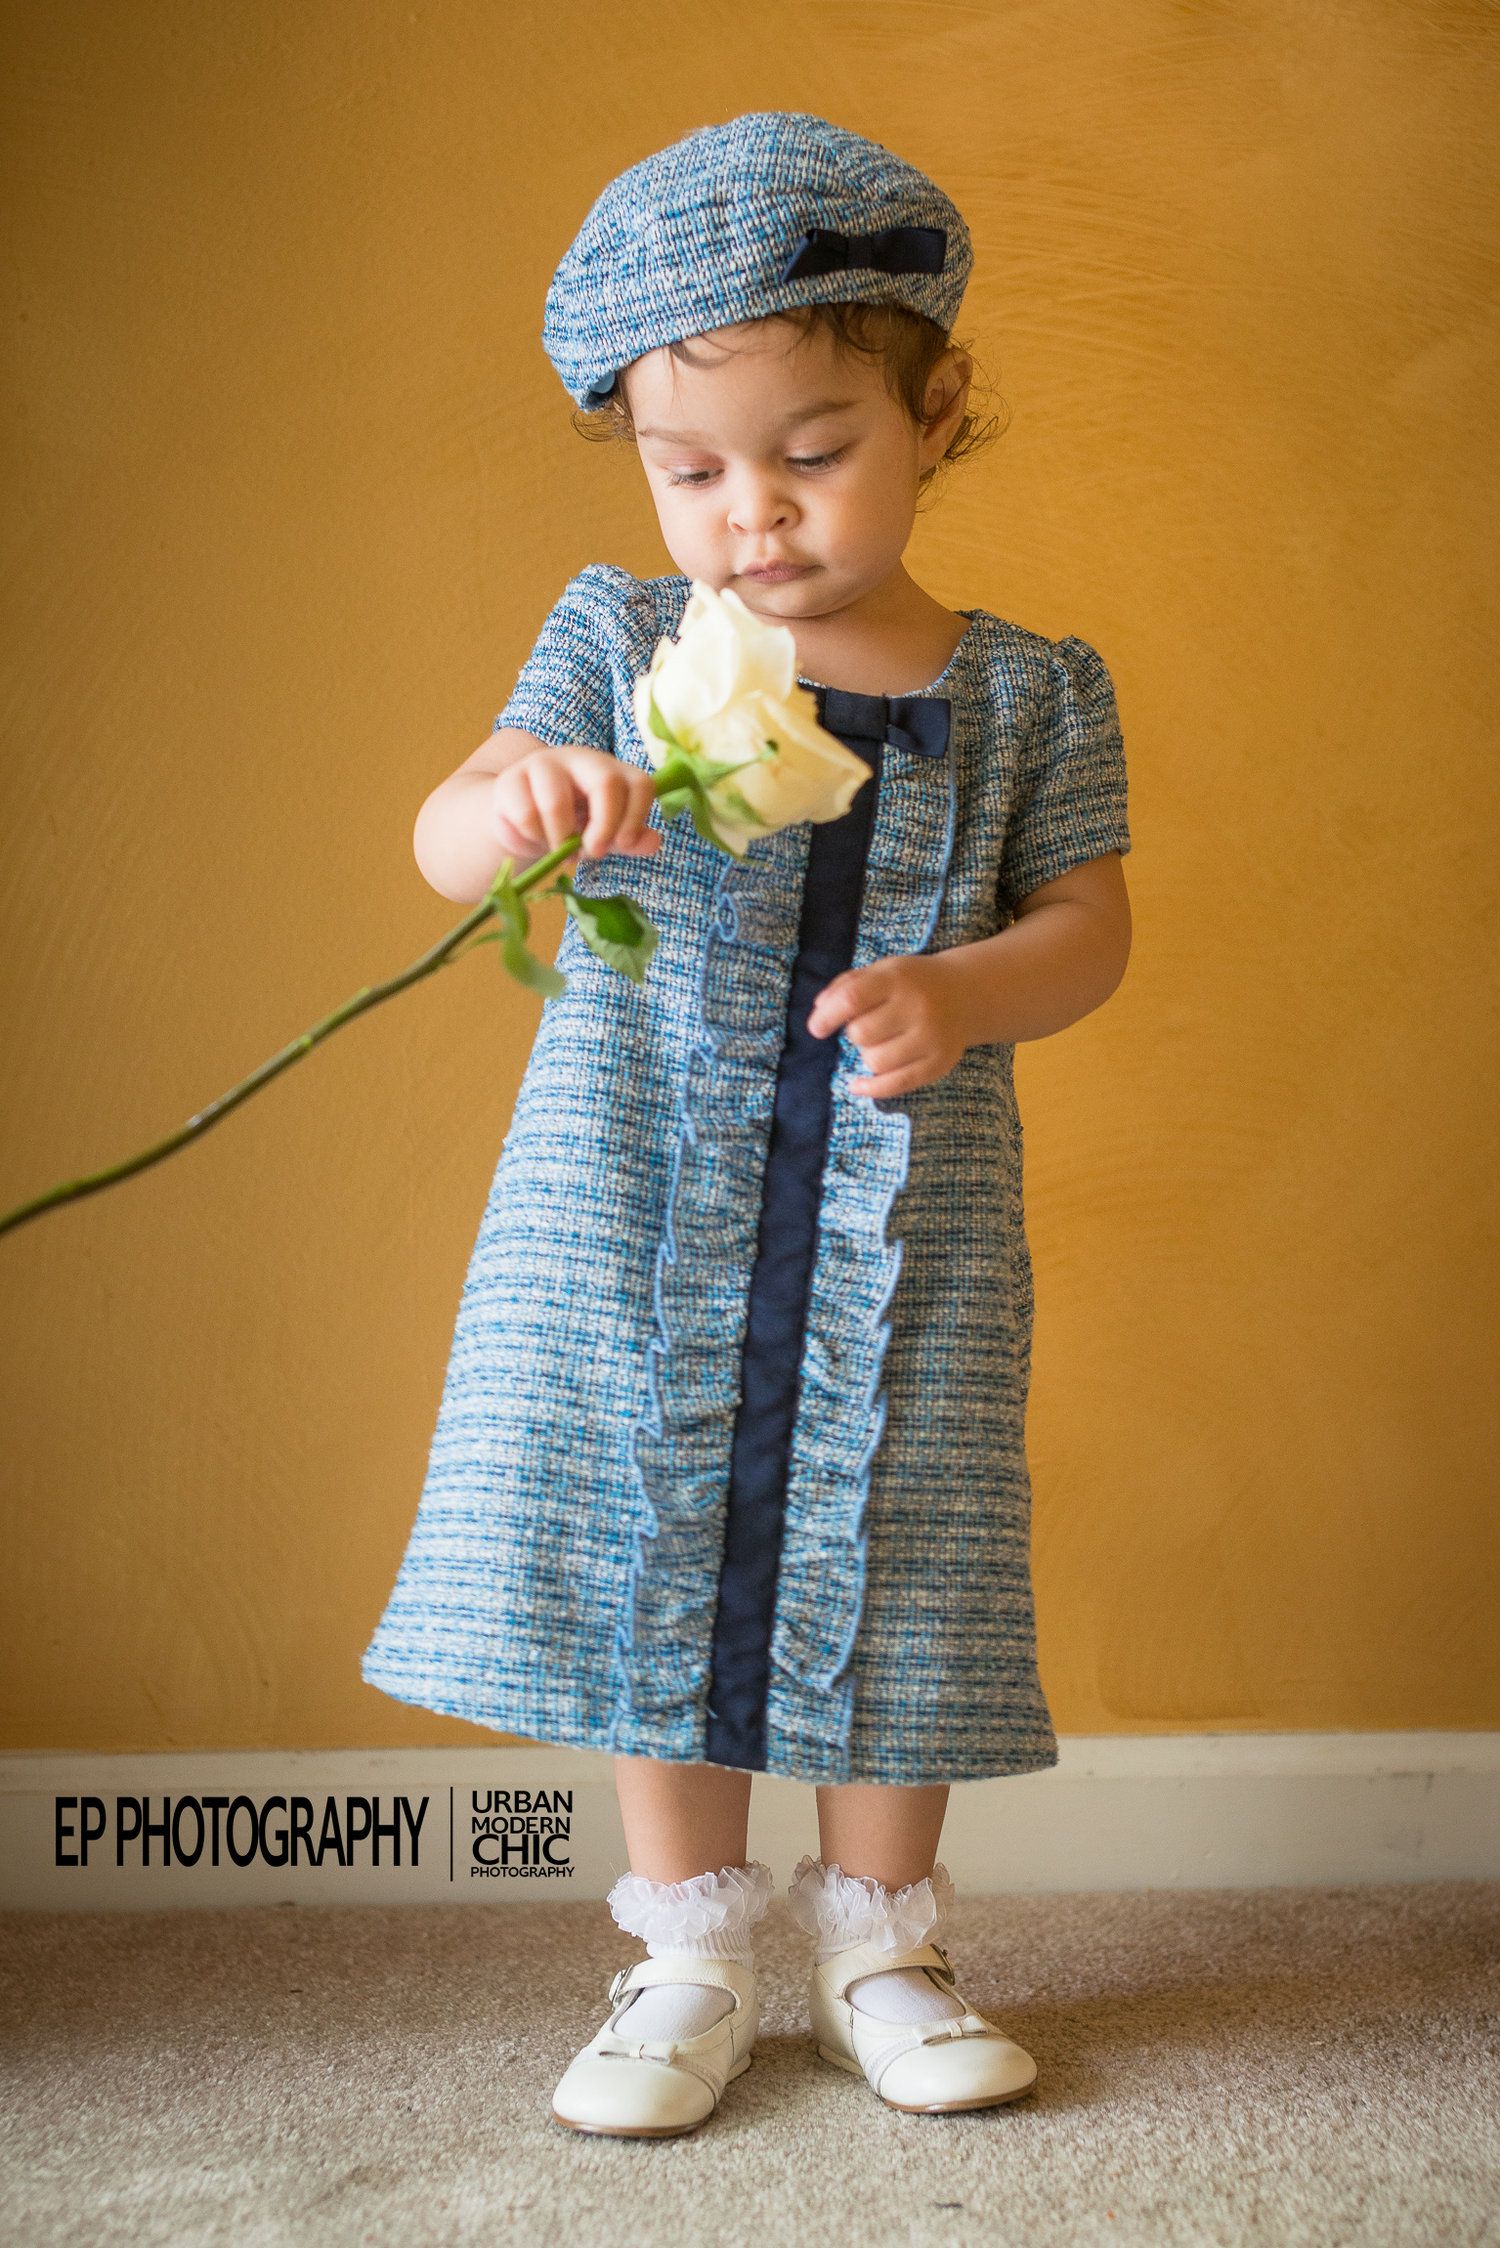 866e392a6c Top 5 Places to Shop for Children's Clothing — EP Photography